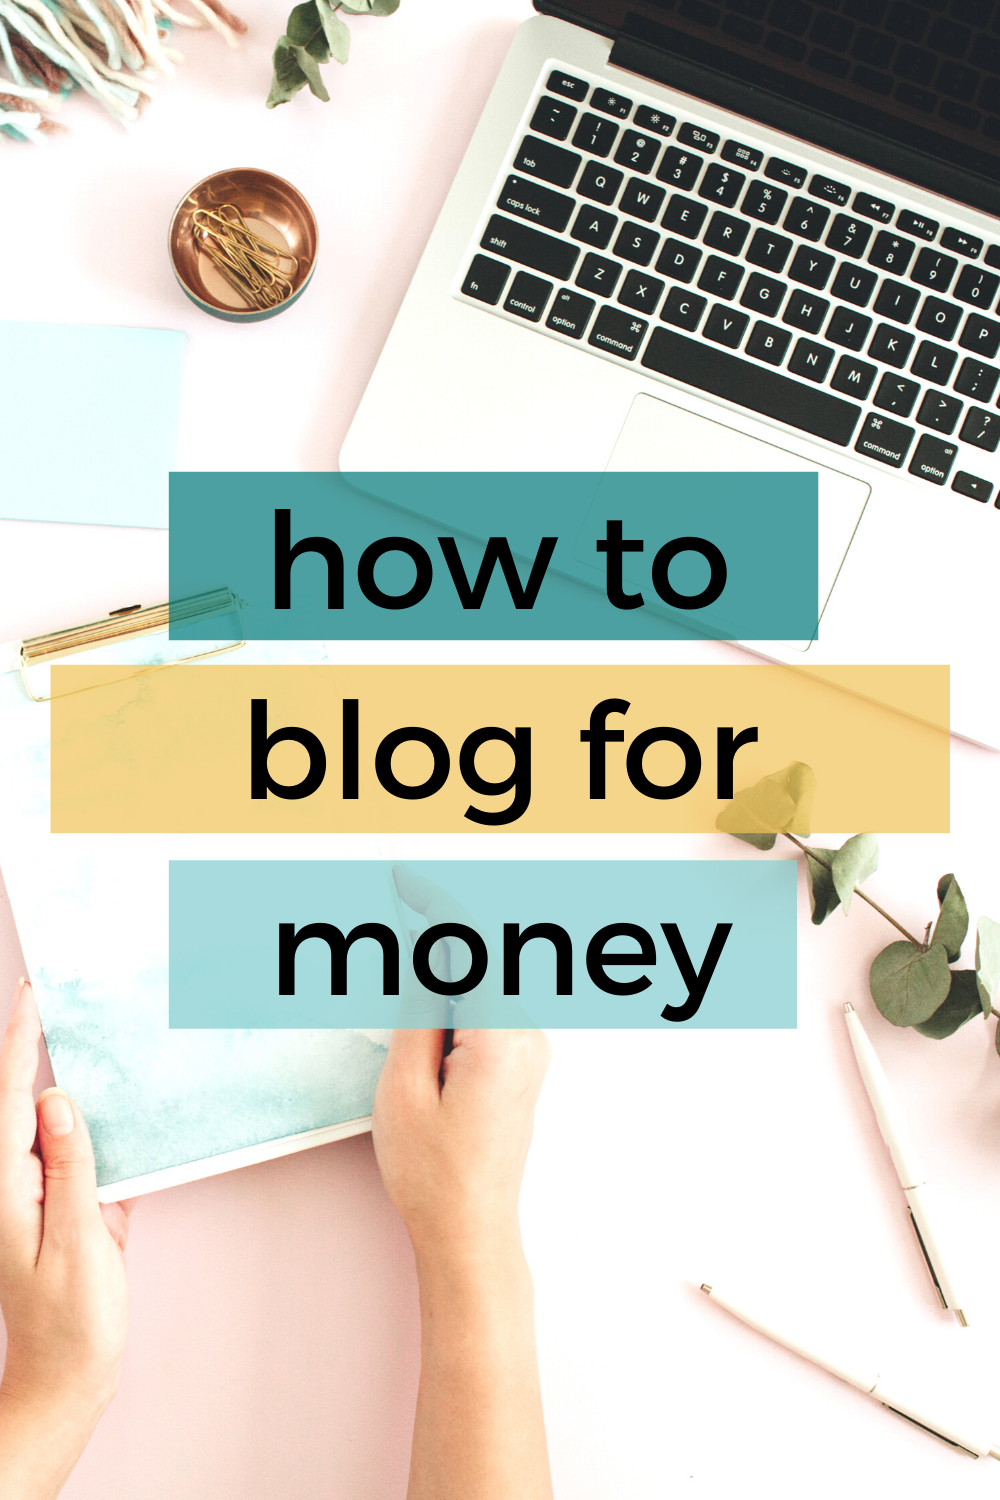 Blog For Money: How To Make Money With A Blog